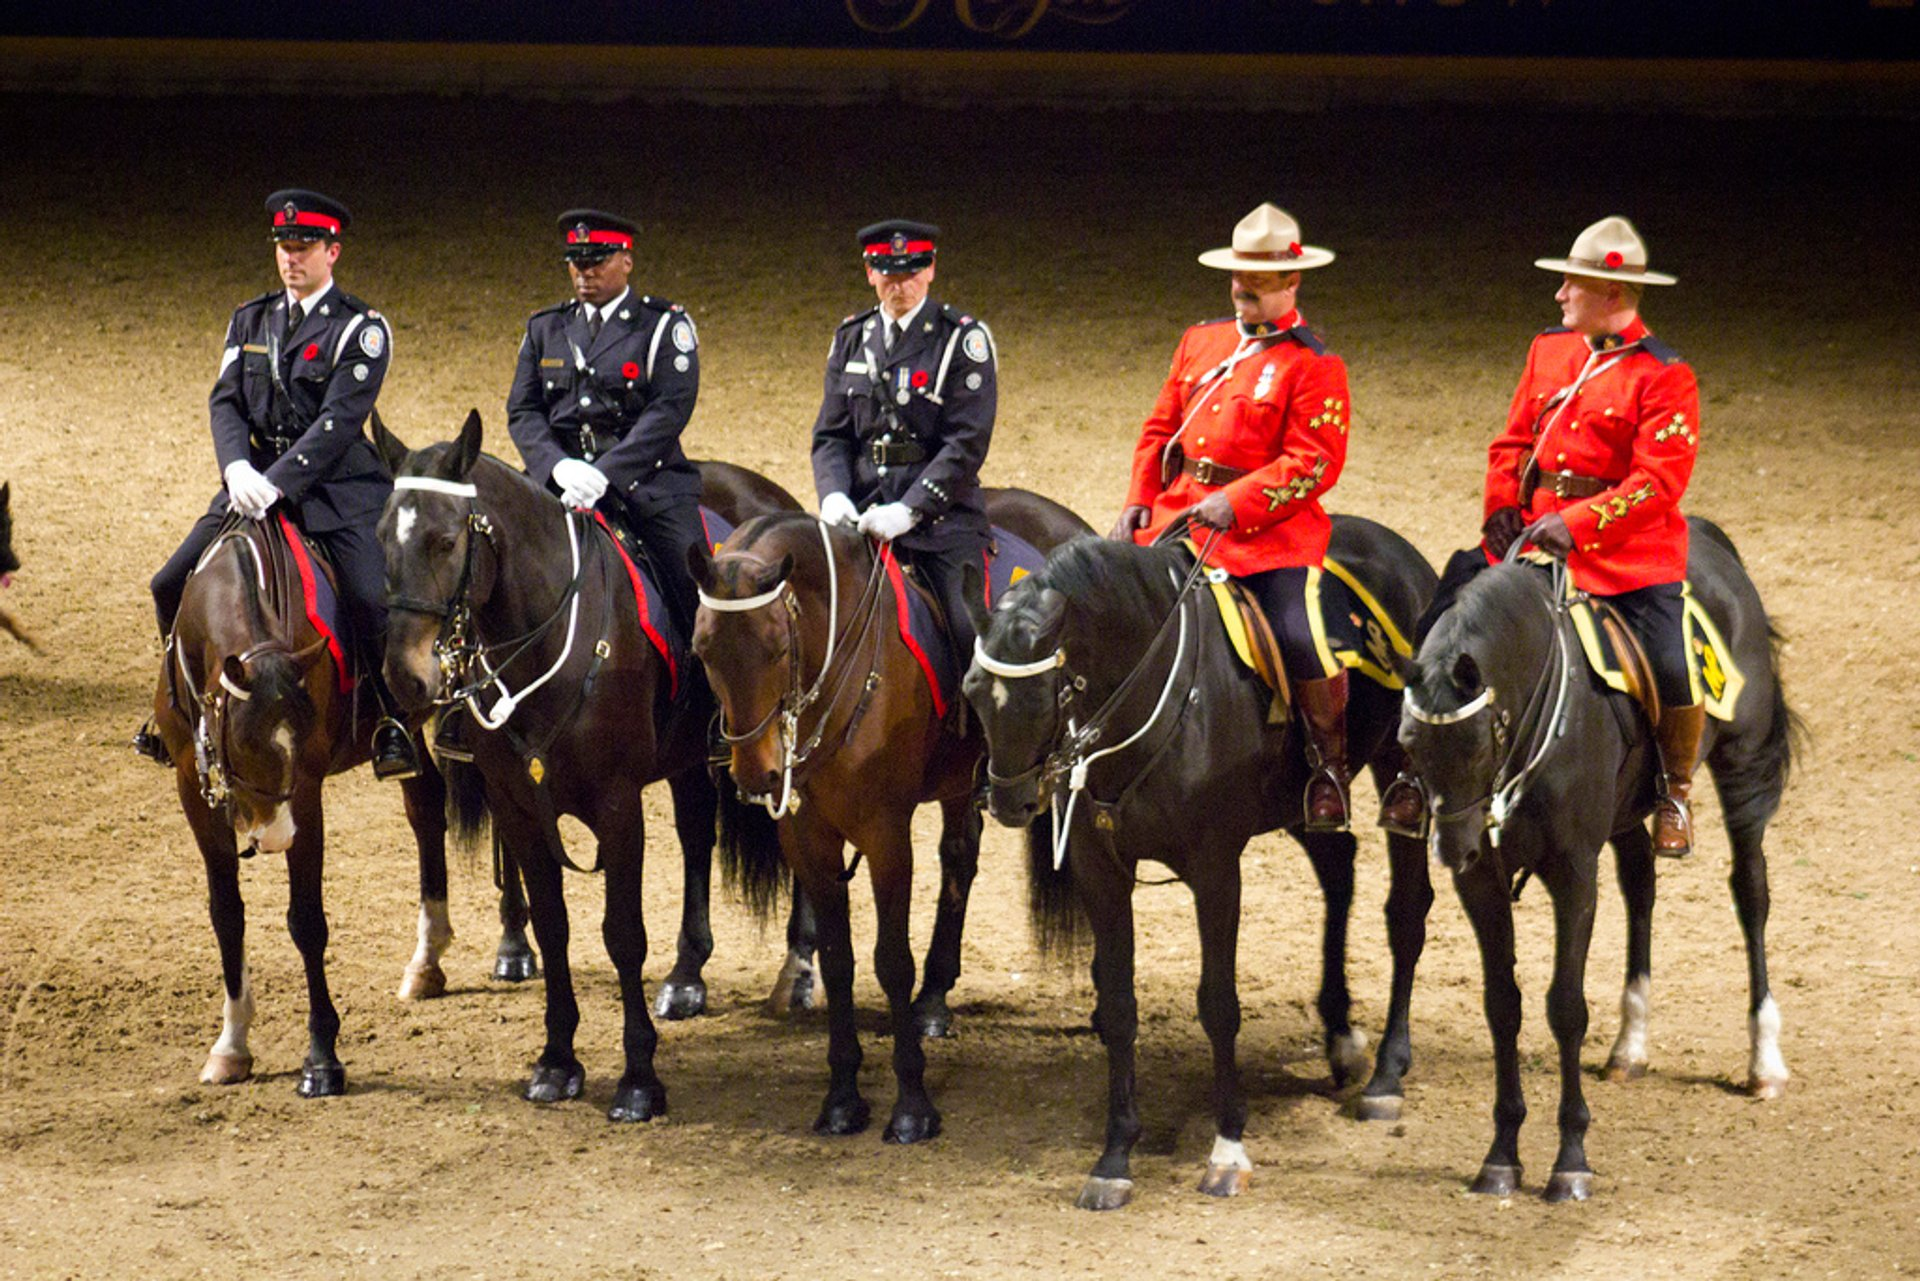 The Royal Agricultural Winter Fair in Toronto - Best Season 2020